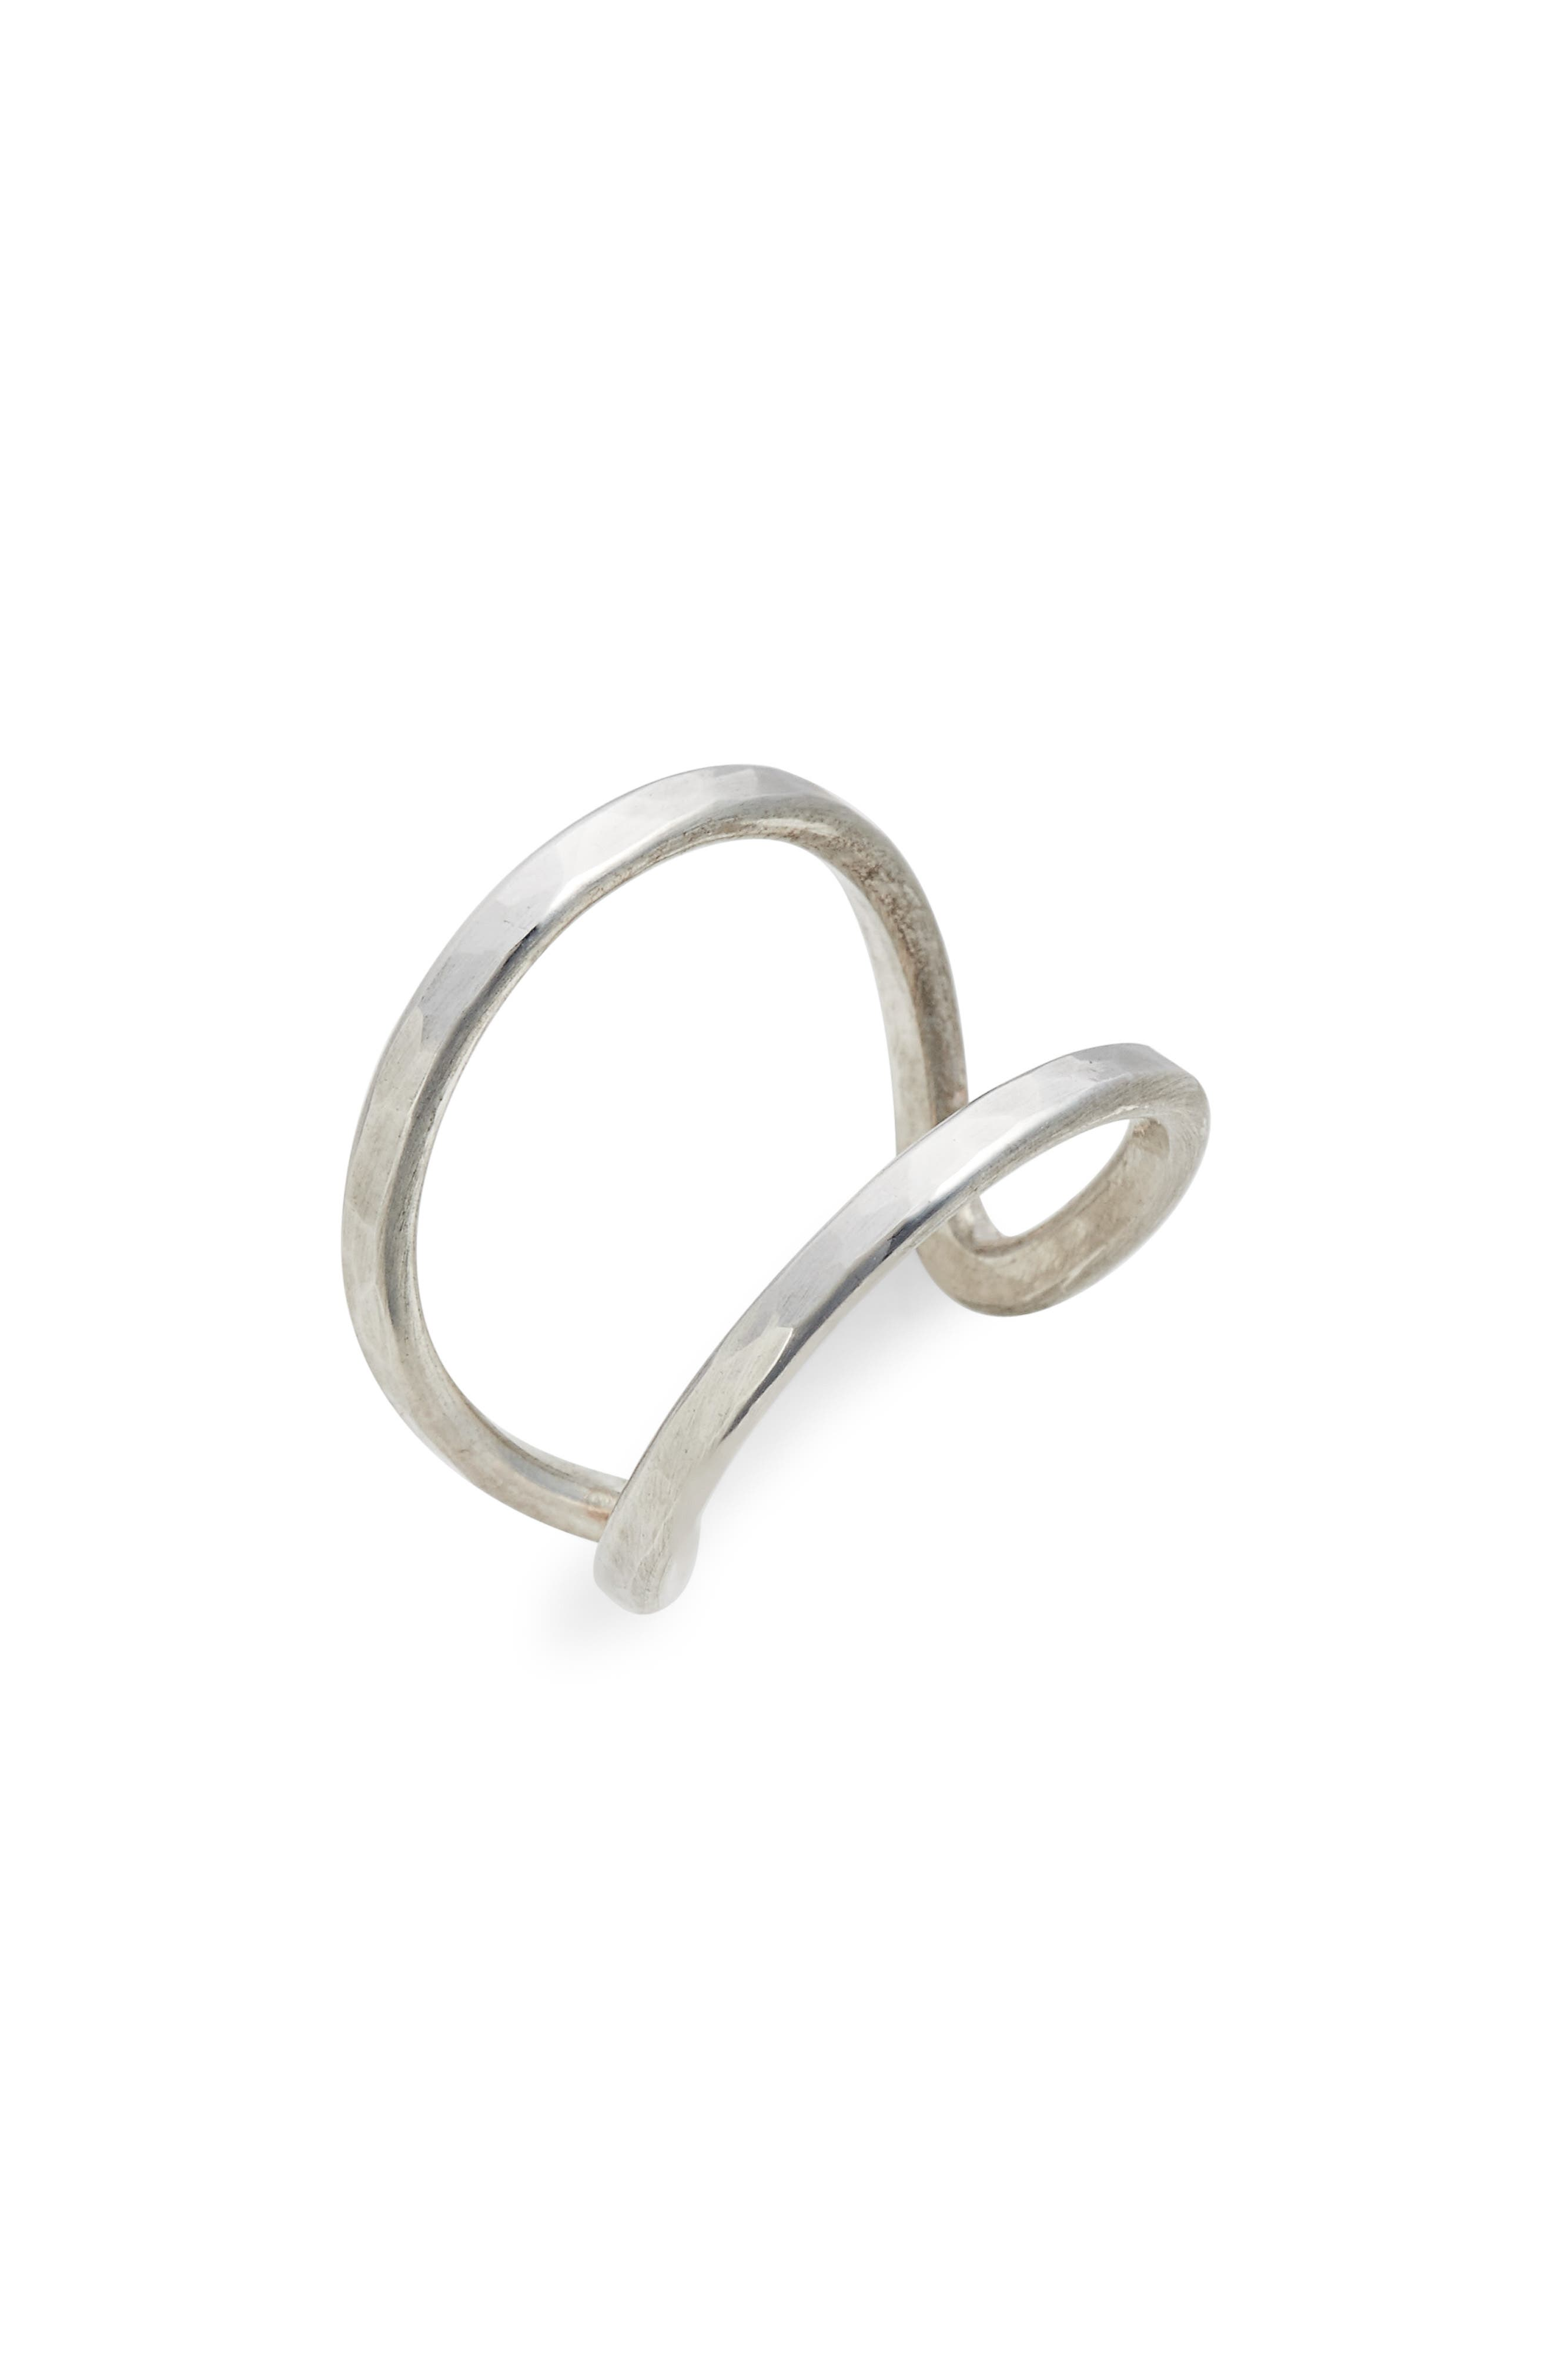 Aria Pure Open Ring,                             Main thumbnail 1, color,                             040